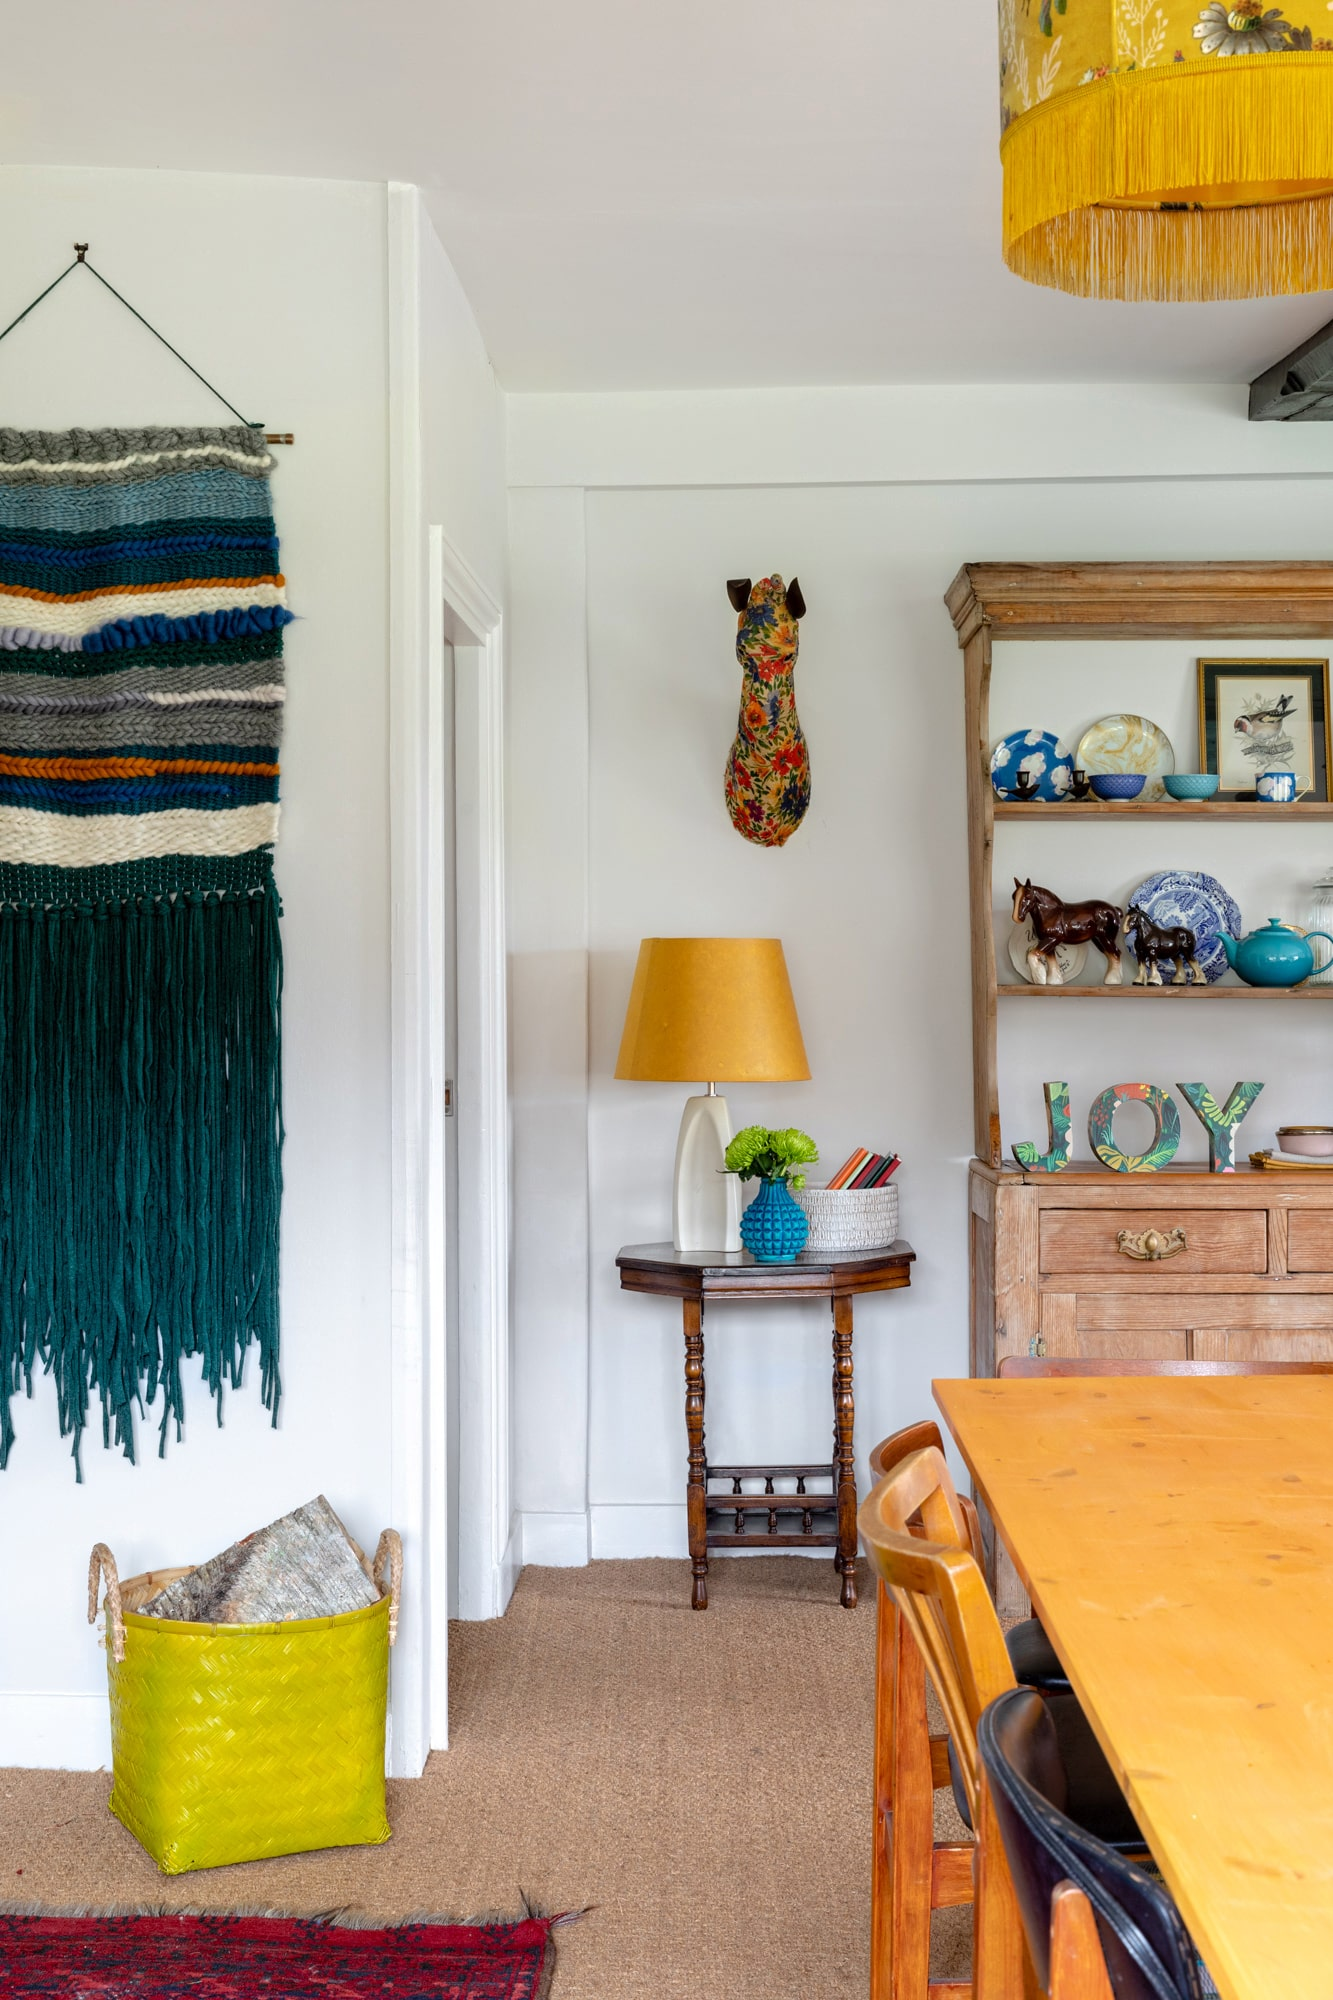 interior shot: colourful dining room in a farm house, wooden table, cabinet with tableware